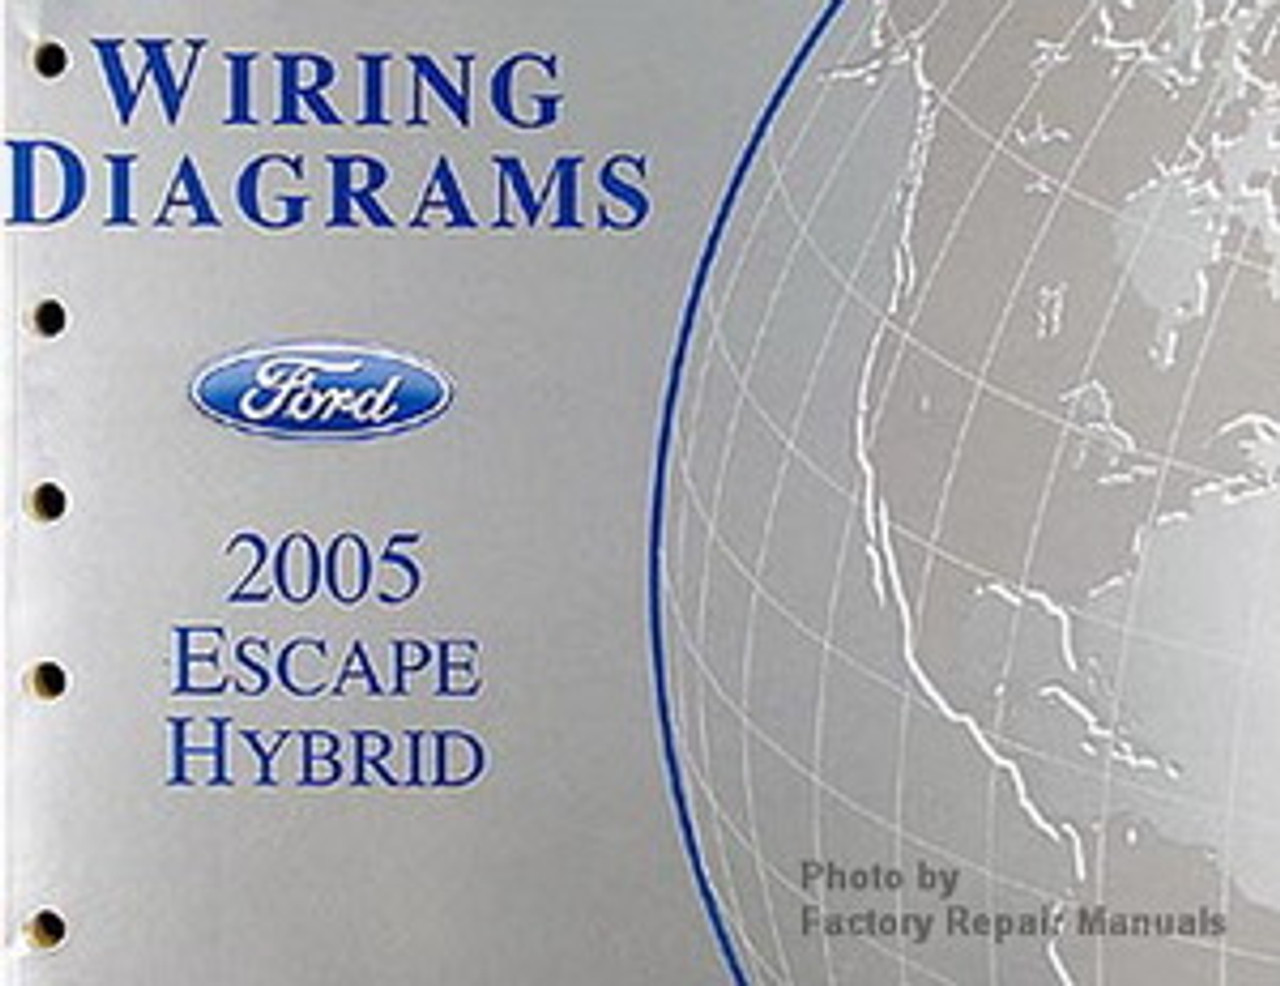 2005 Ford Escape Hybrid Electrical Wiring Diagrams Original - Factory  Repair Manuals | Hybrid Wiring Diagrams |  | Factory Repair Manuals